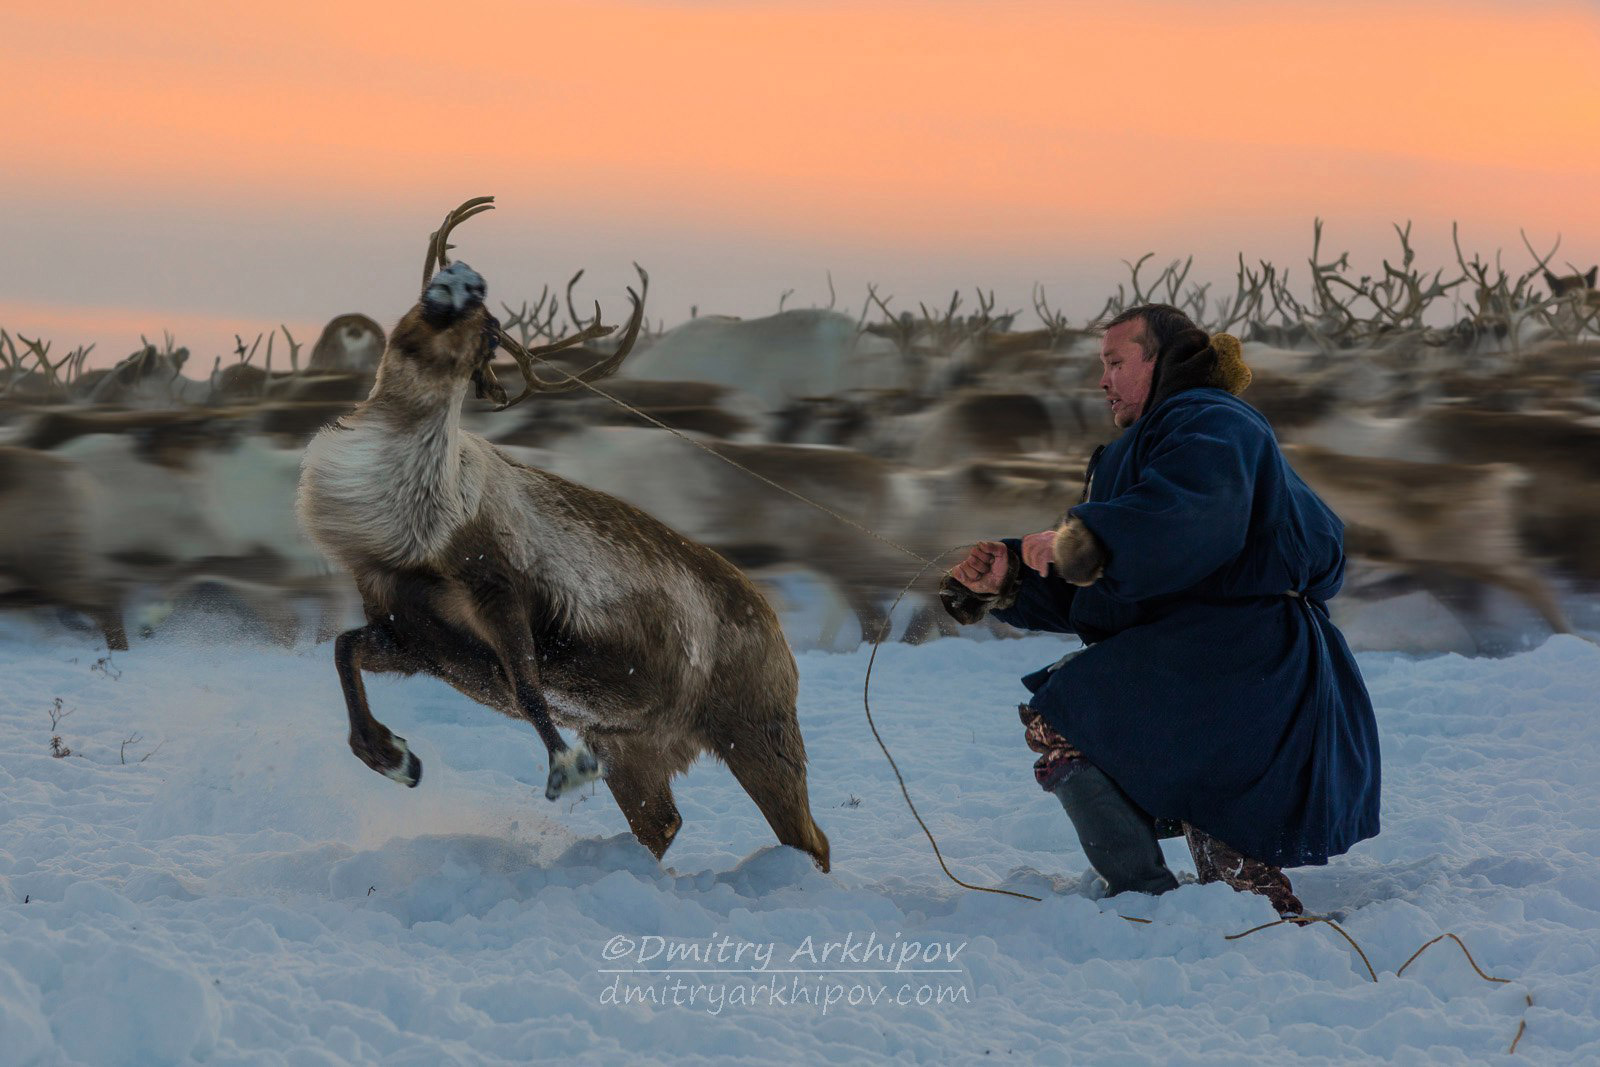 The Reindeer Herdsman, © Dmitry Arkhipov, Second Place, Golden Turtle Photo Contest